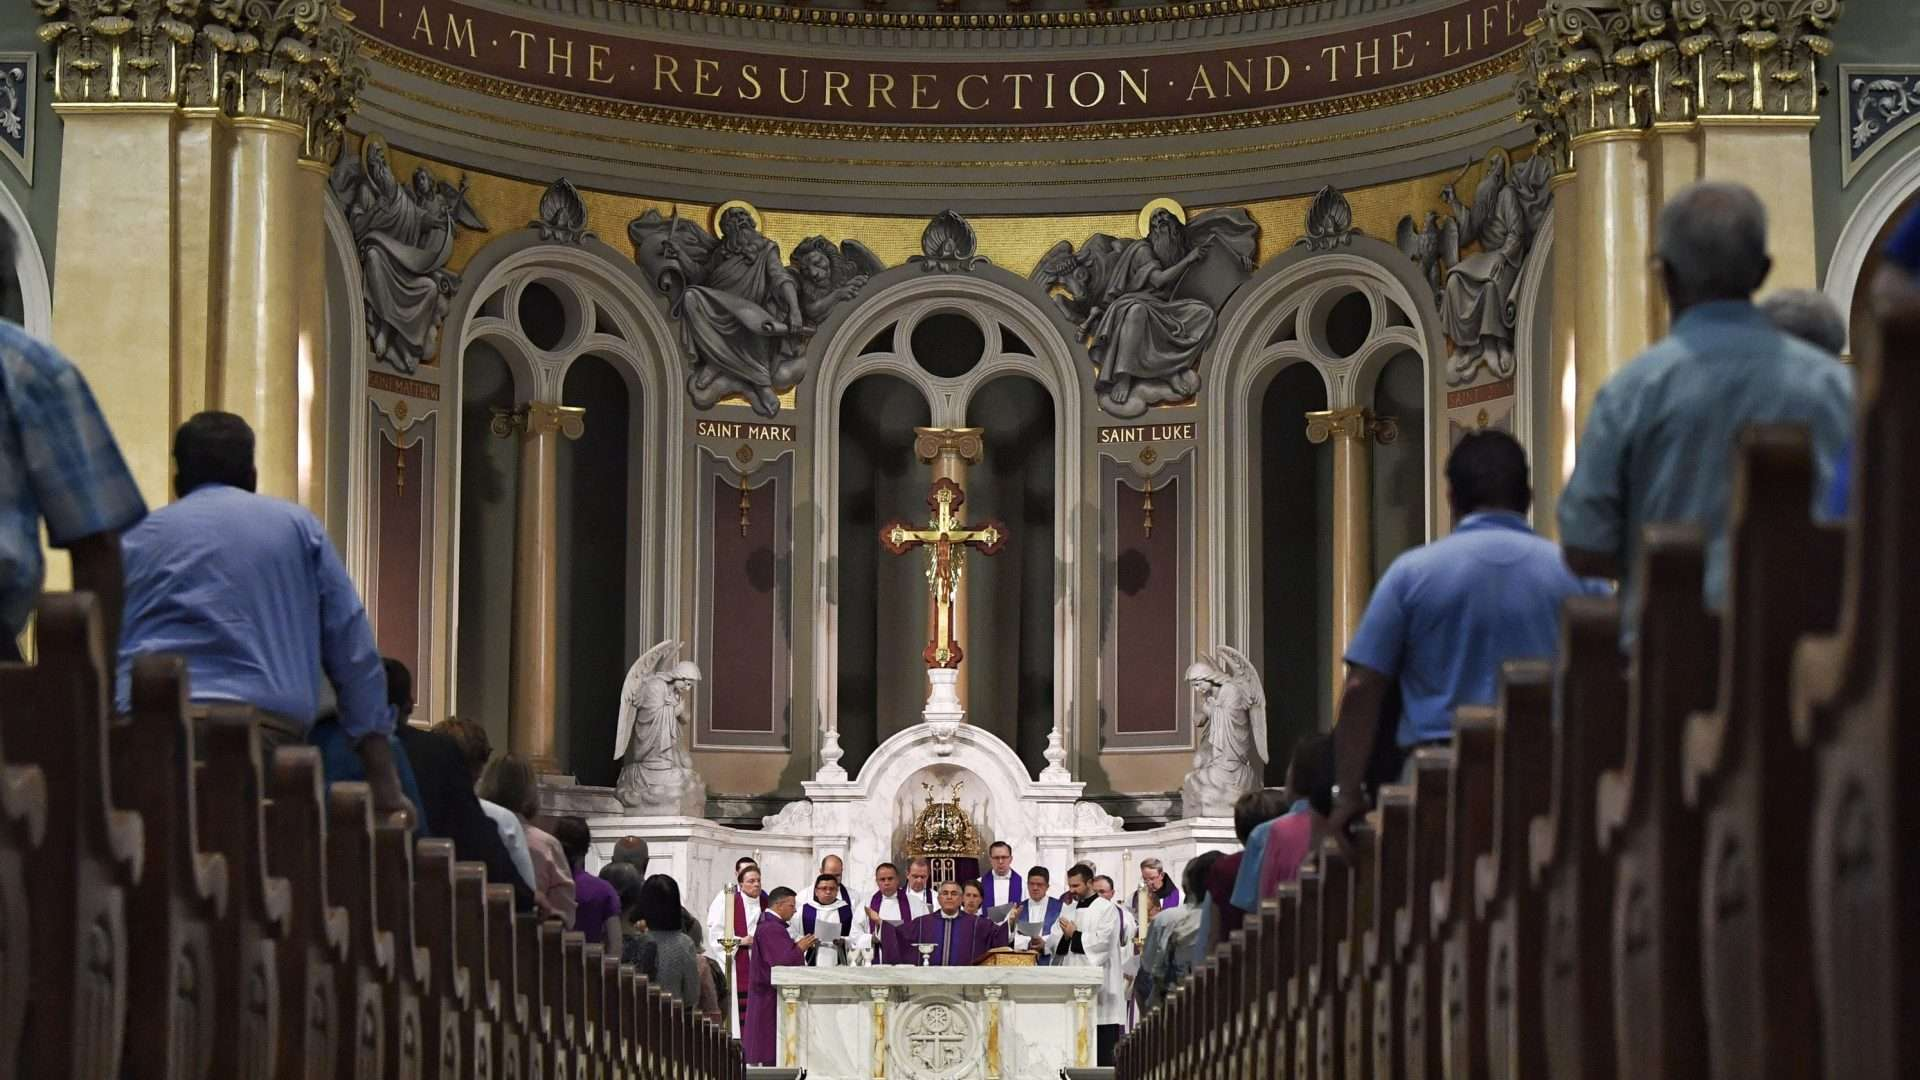 Things Every Catholic Needs To Do While On Vacation